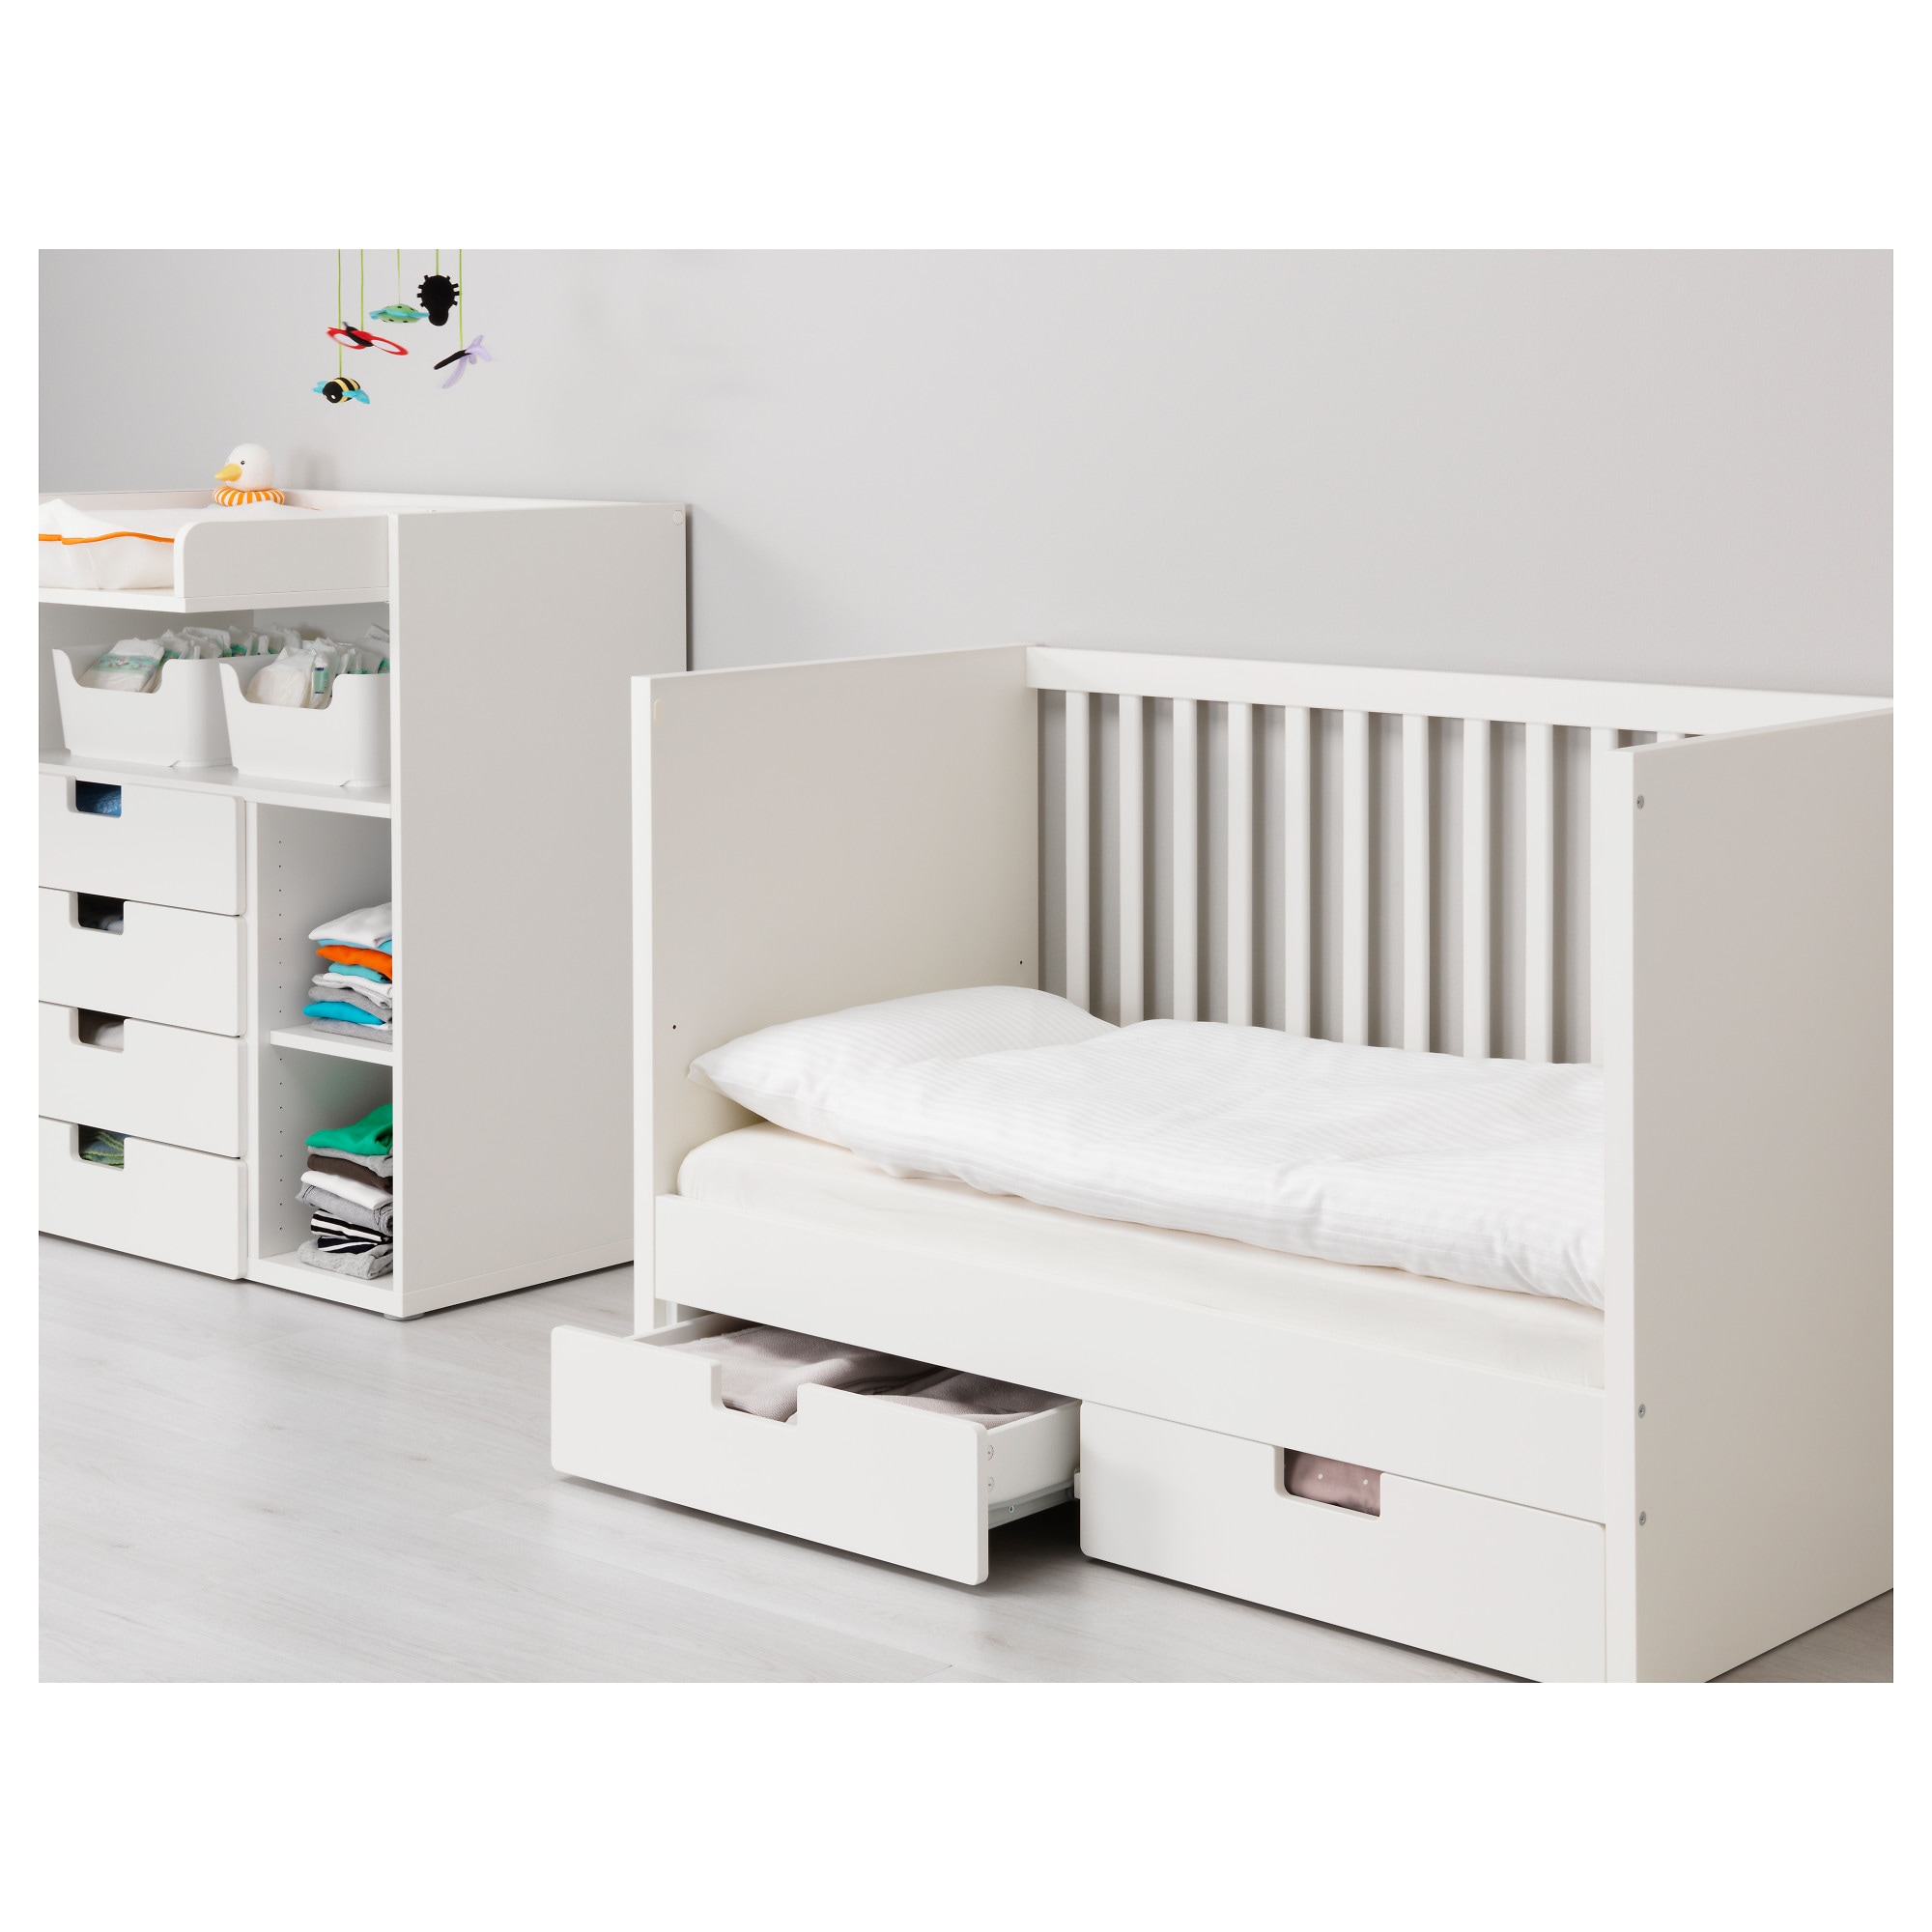 lit ikea vikare lit modulable ikea finest ikea chambre leksvik ikea volutif lit enfant hensvik. Black Bedroom Furniture Sets. Home Design Ideas